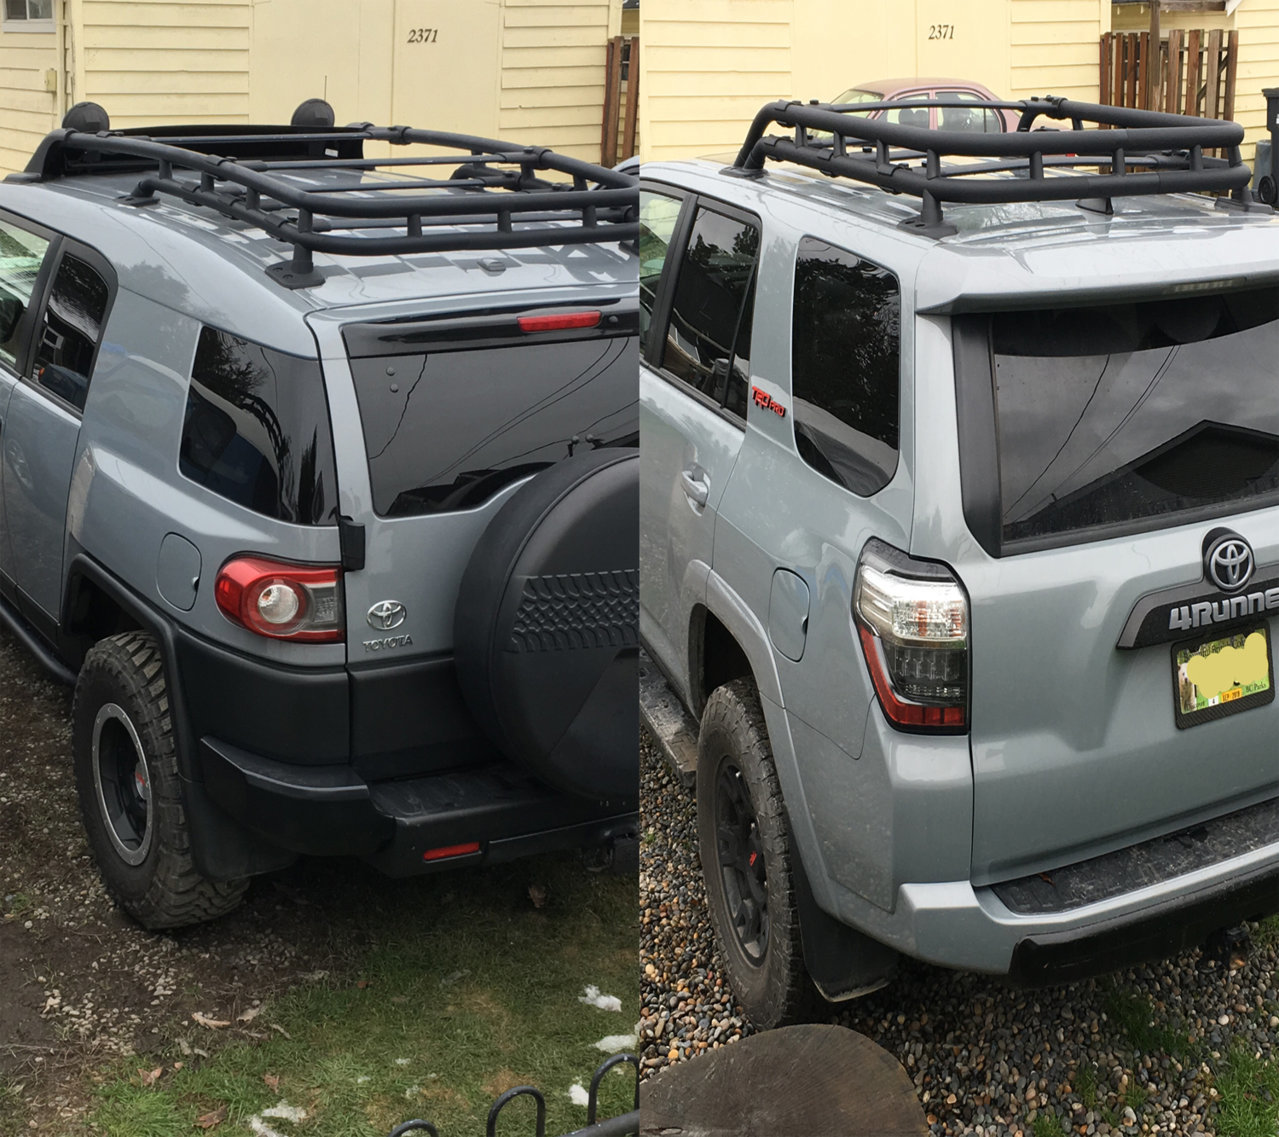 2019 Trd Pro Roof Rack Dimensions Page 2 Toyota 4runner Forum 4runners Com